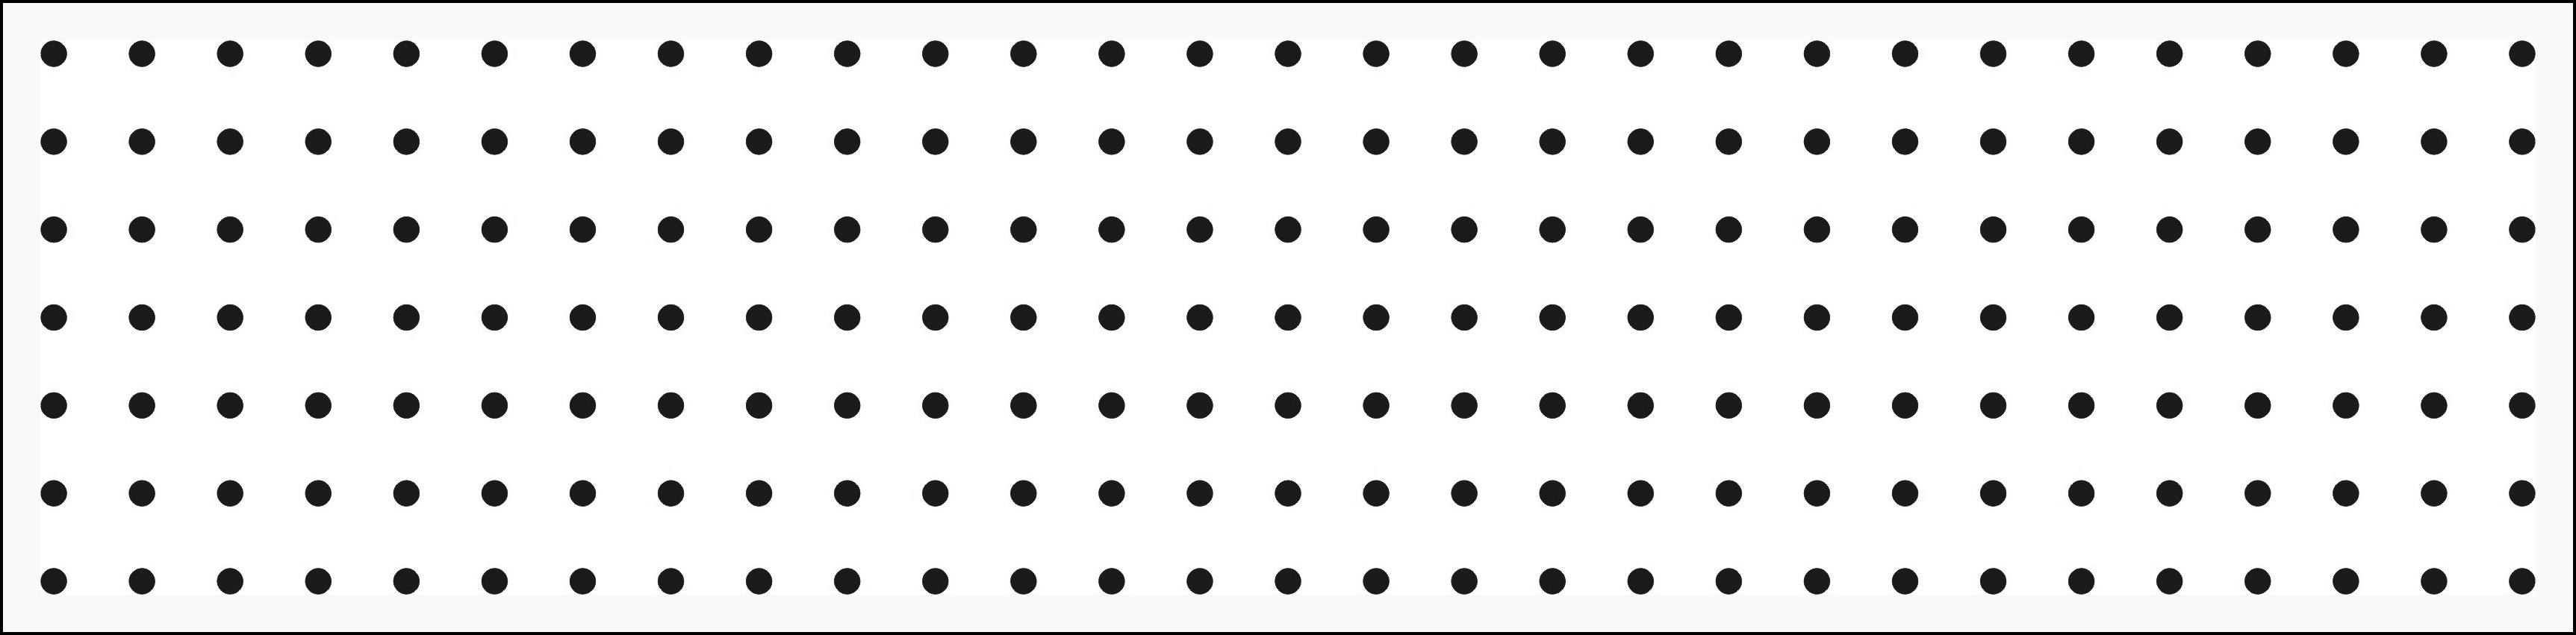 Drill Hole Template